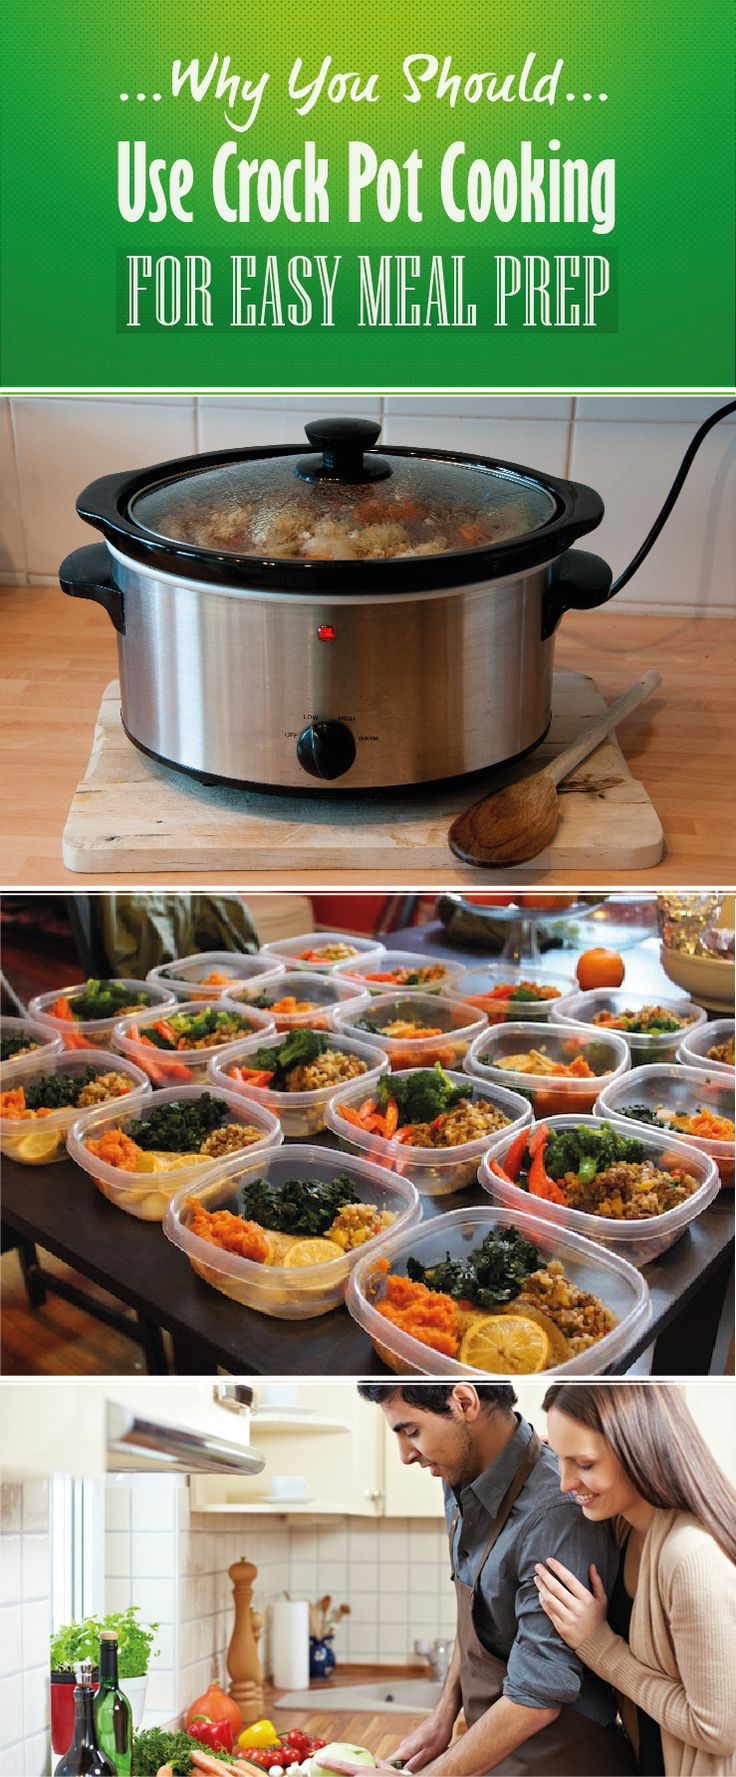 Crock pot cooking may be the best thing to come into a fit guy's life: no hassle, cleanup is easy and you can prep meals for the week (plus date night.)